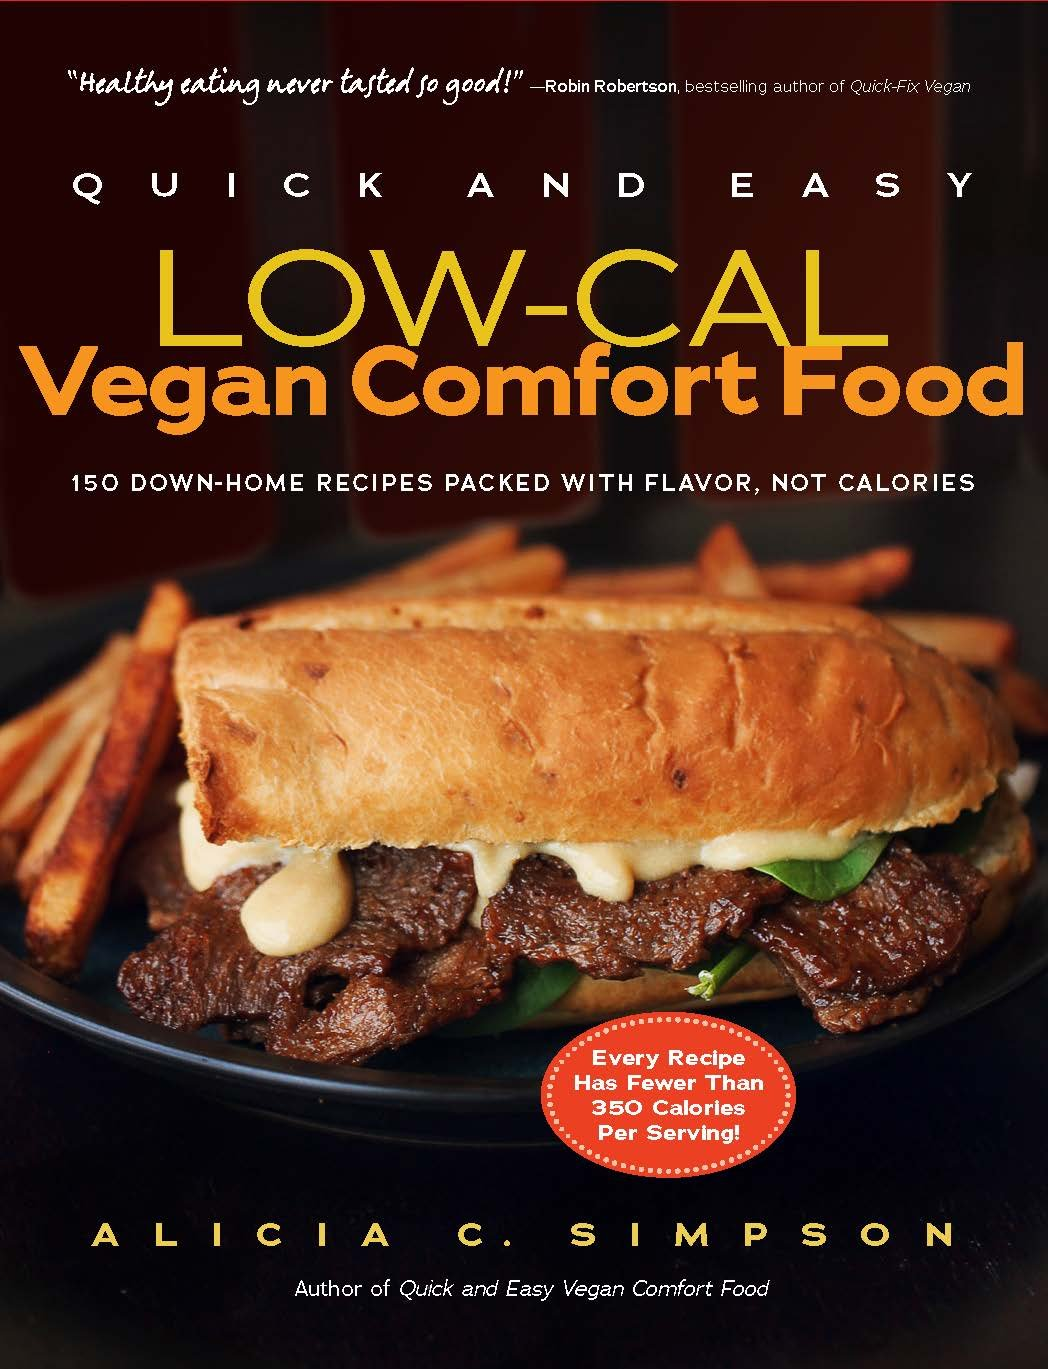 Quick and easy low cal vegan comfort food 150 down home recipes quick and easy low cal vegan comfort food 150 down home recipes packed with flavor not calories alicia c simpson ms rd ibclc ld 9781615190423 forumfinder Image collections